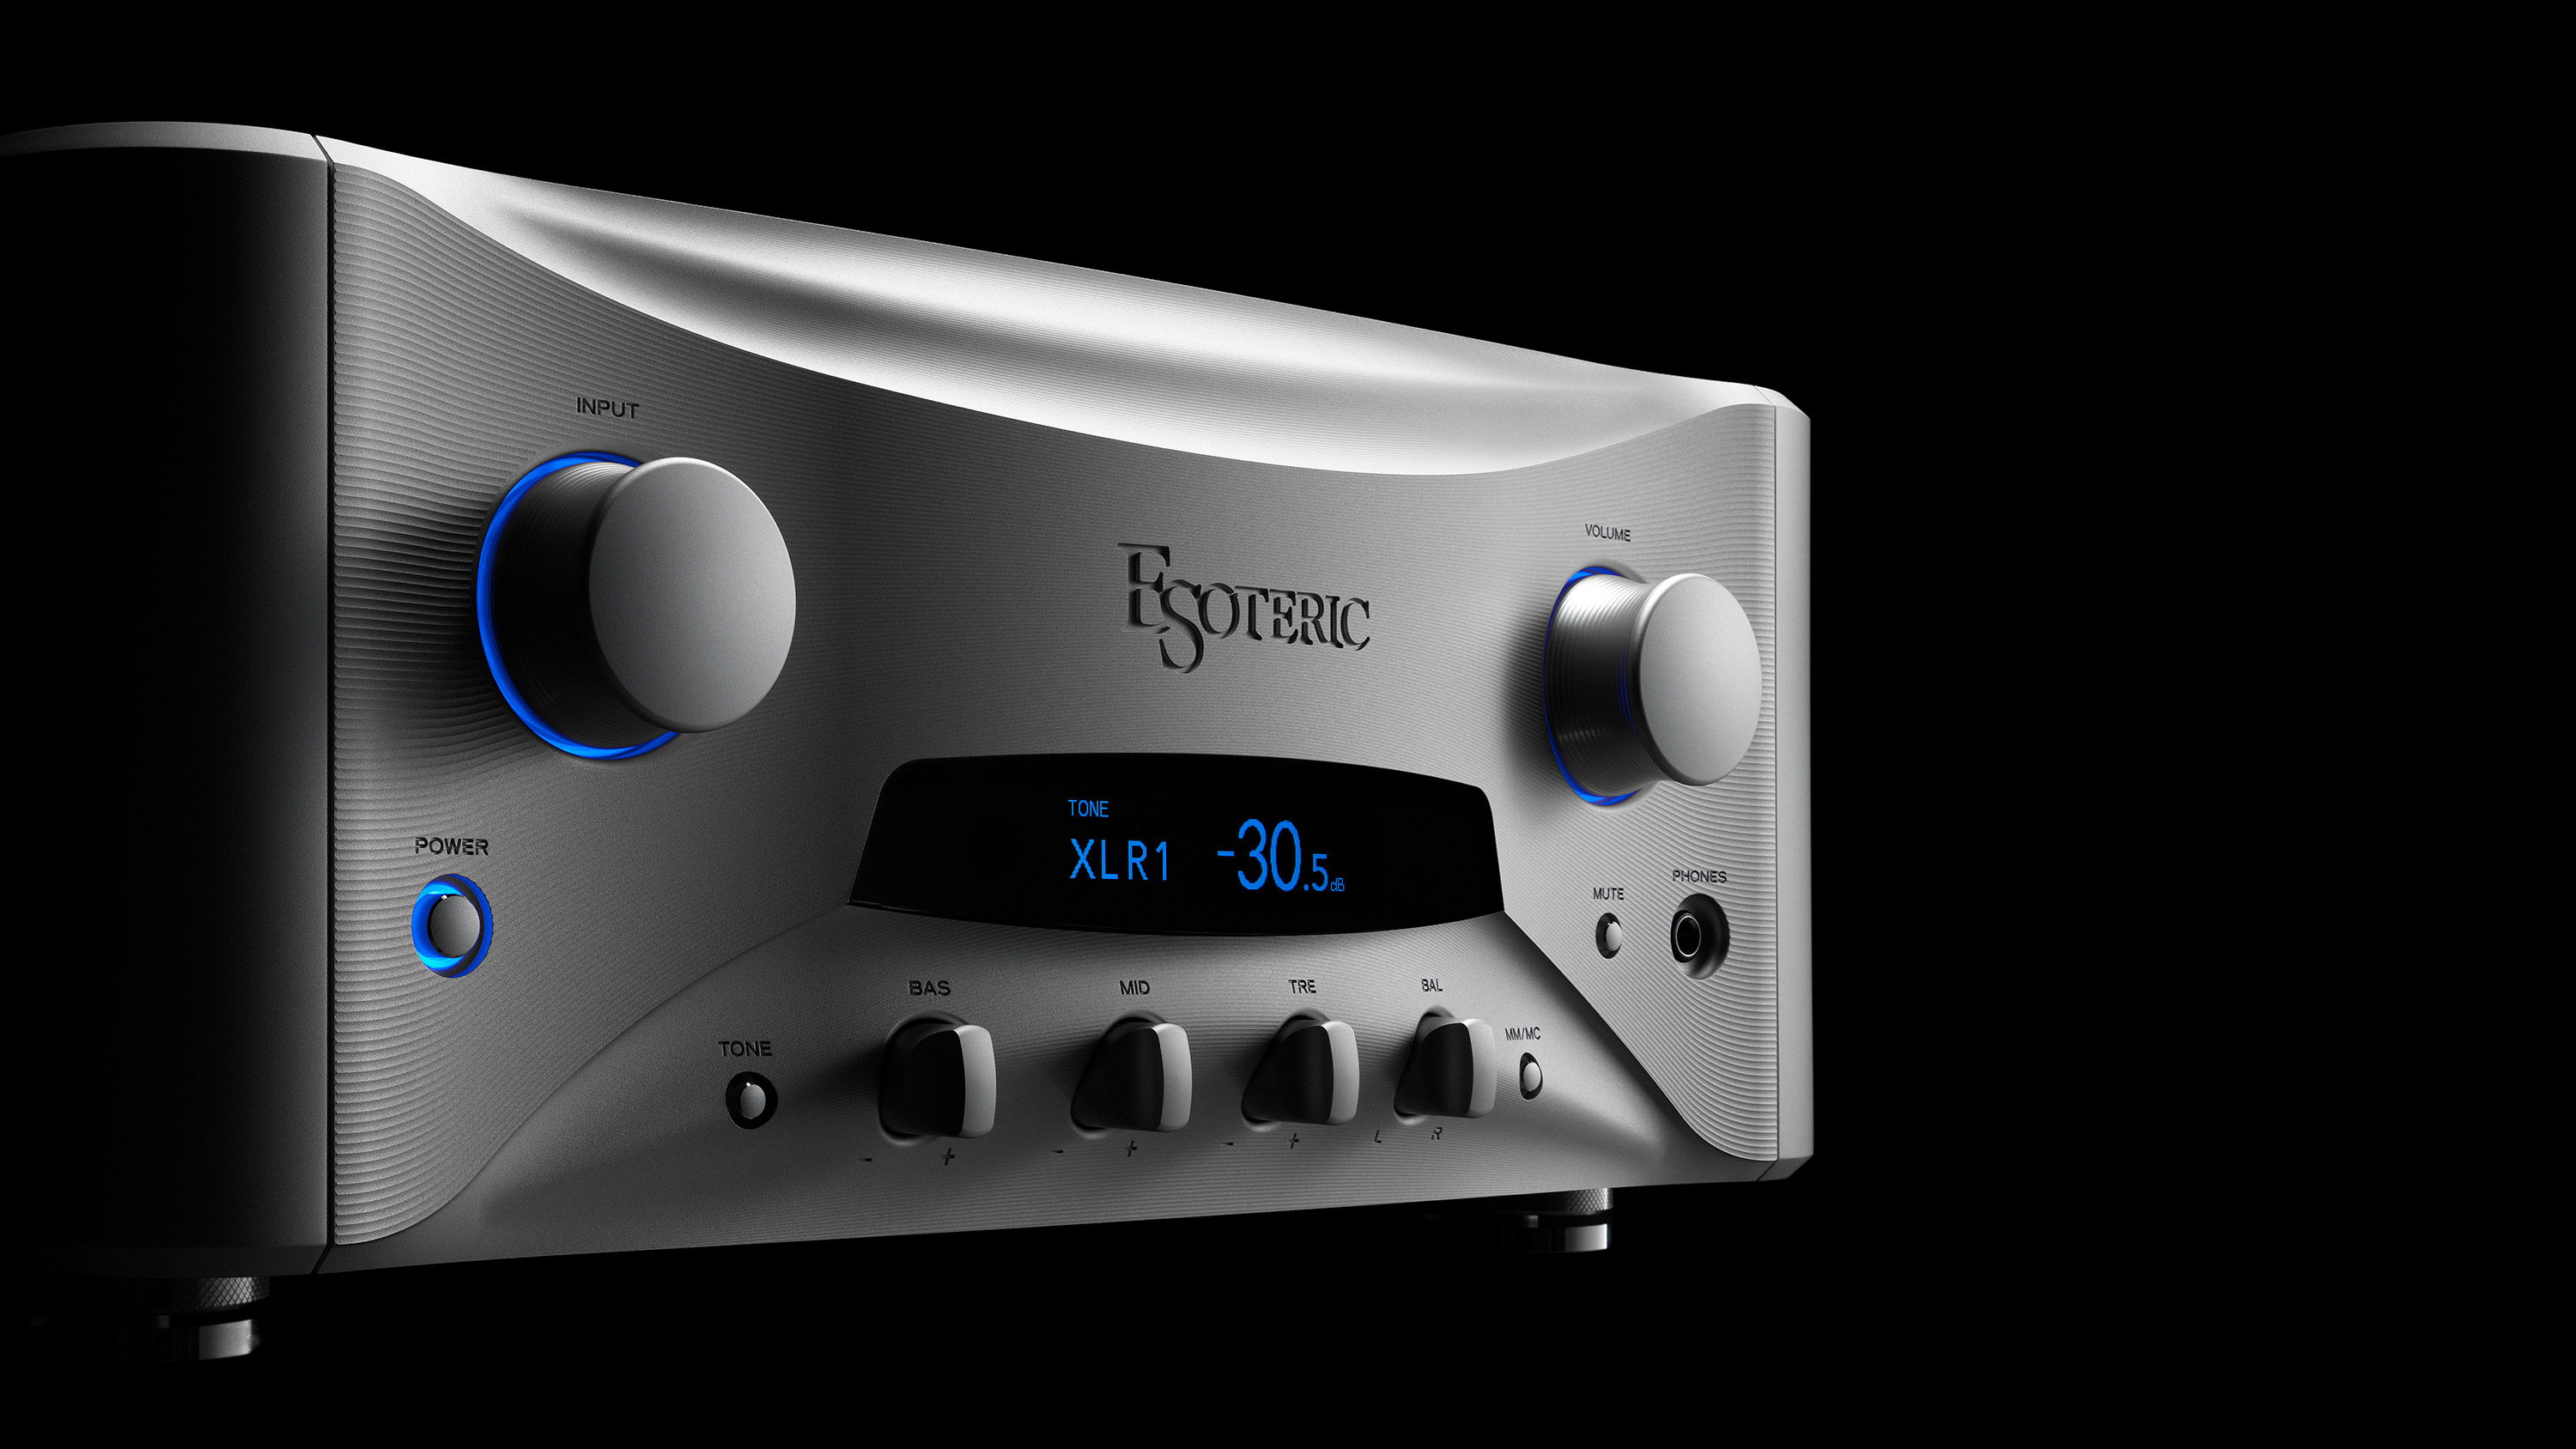 Amplifier Esoteric Japan High End Audio Manufacturer